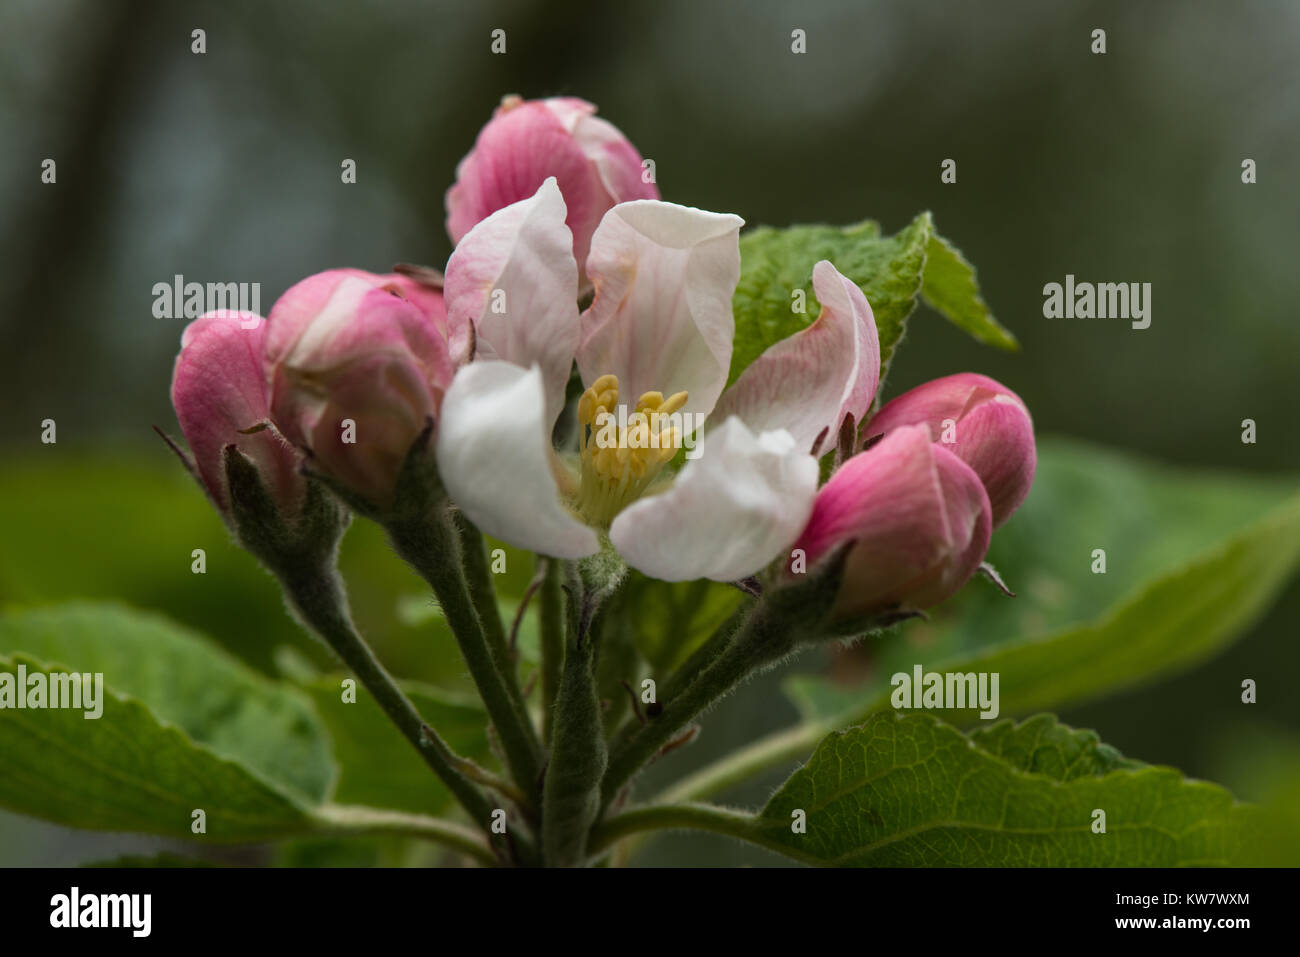 The pink and white spring flowers of a Bramley apple tree in an English garden orchard. - Stock Image